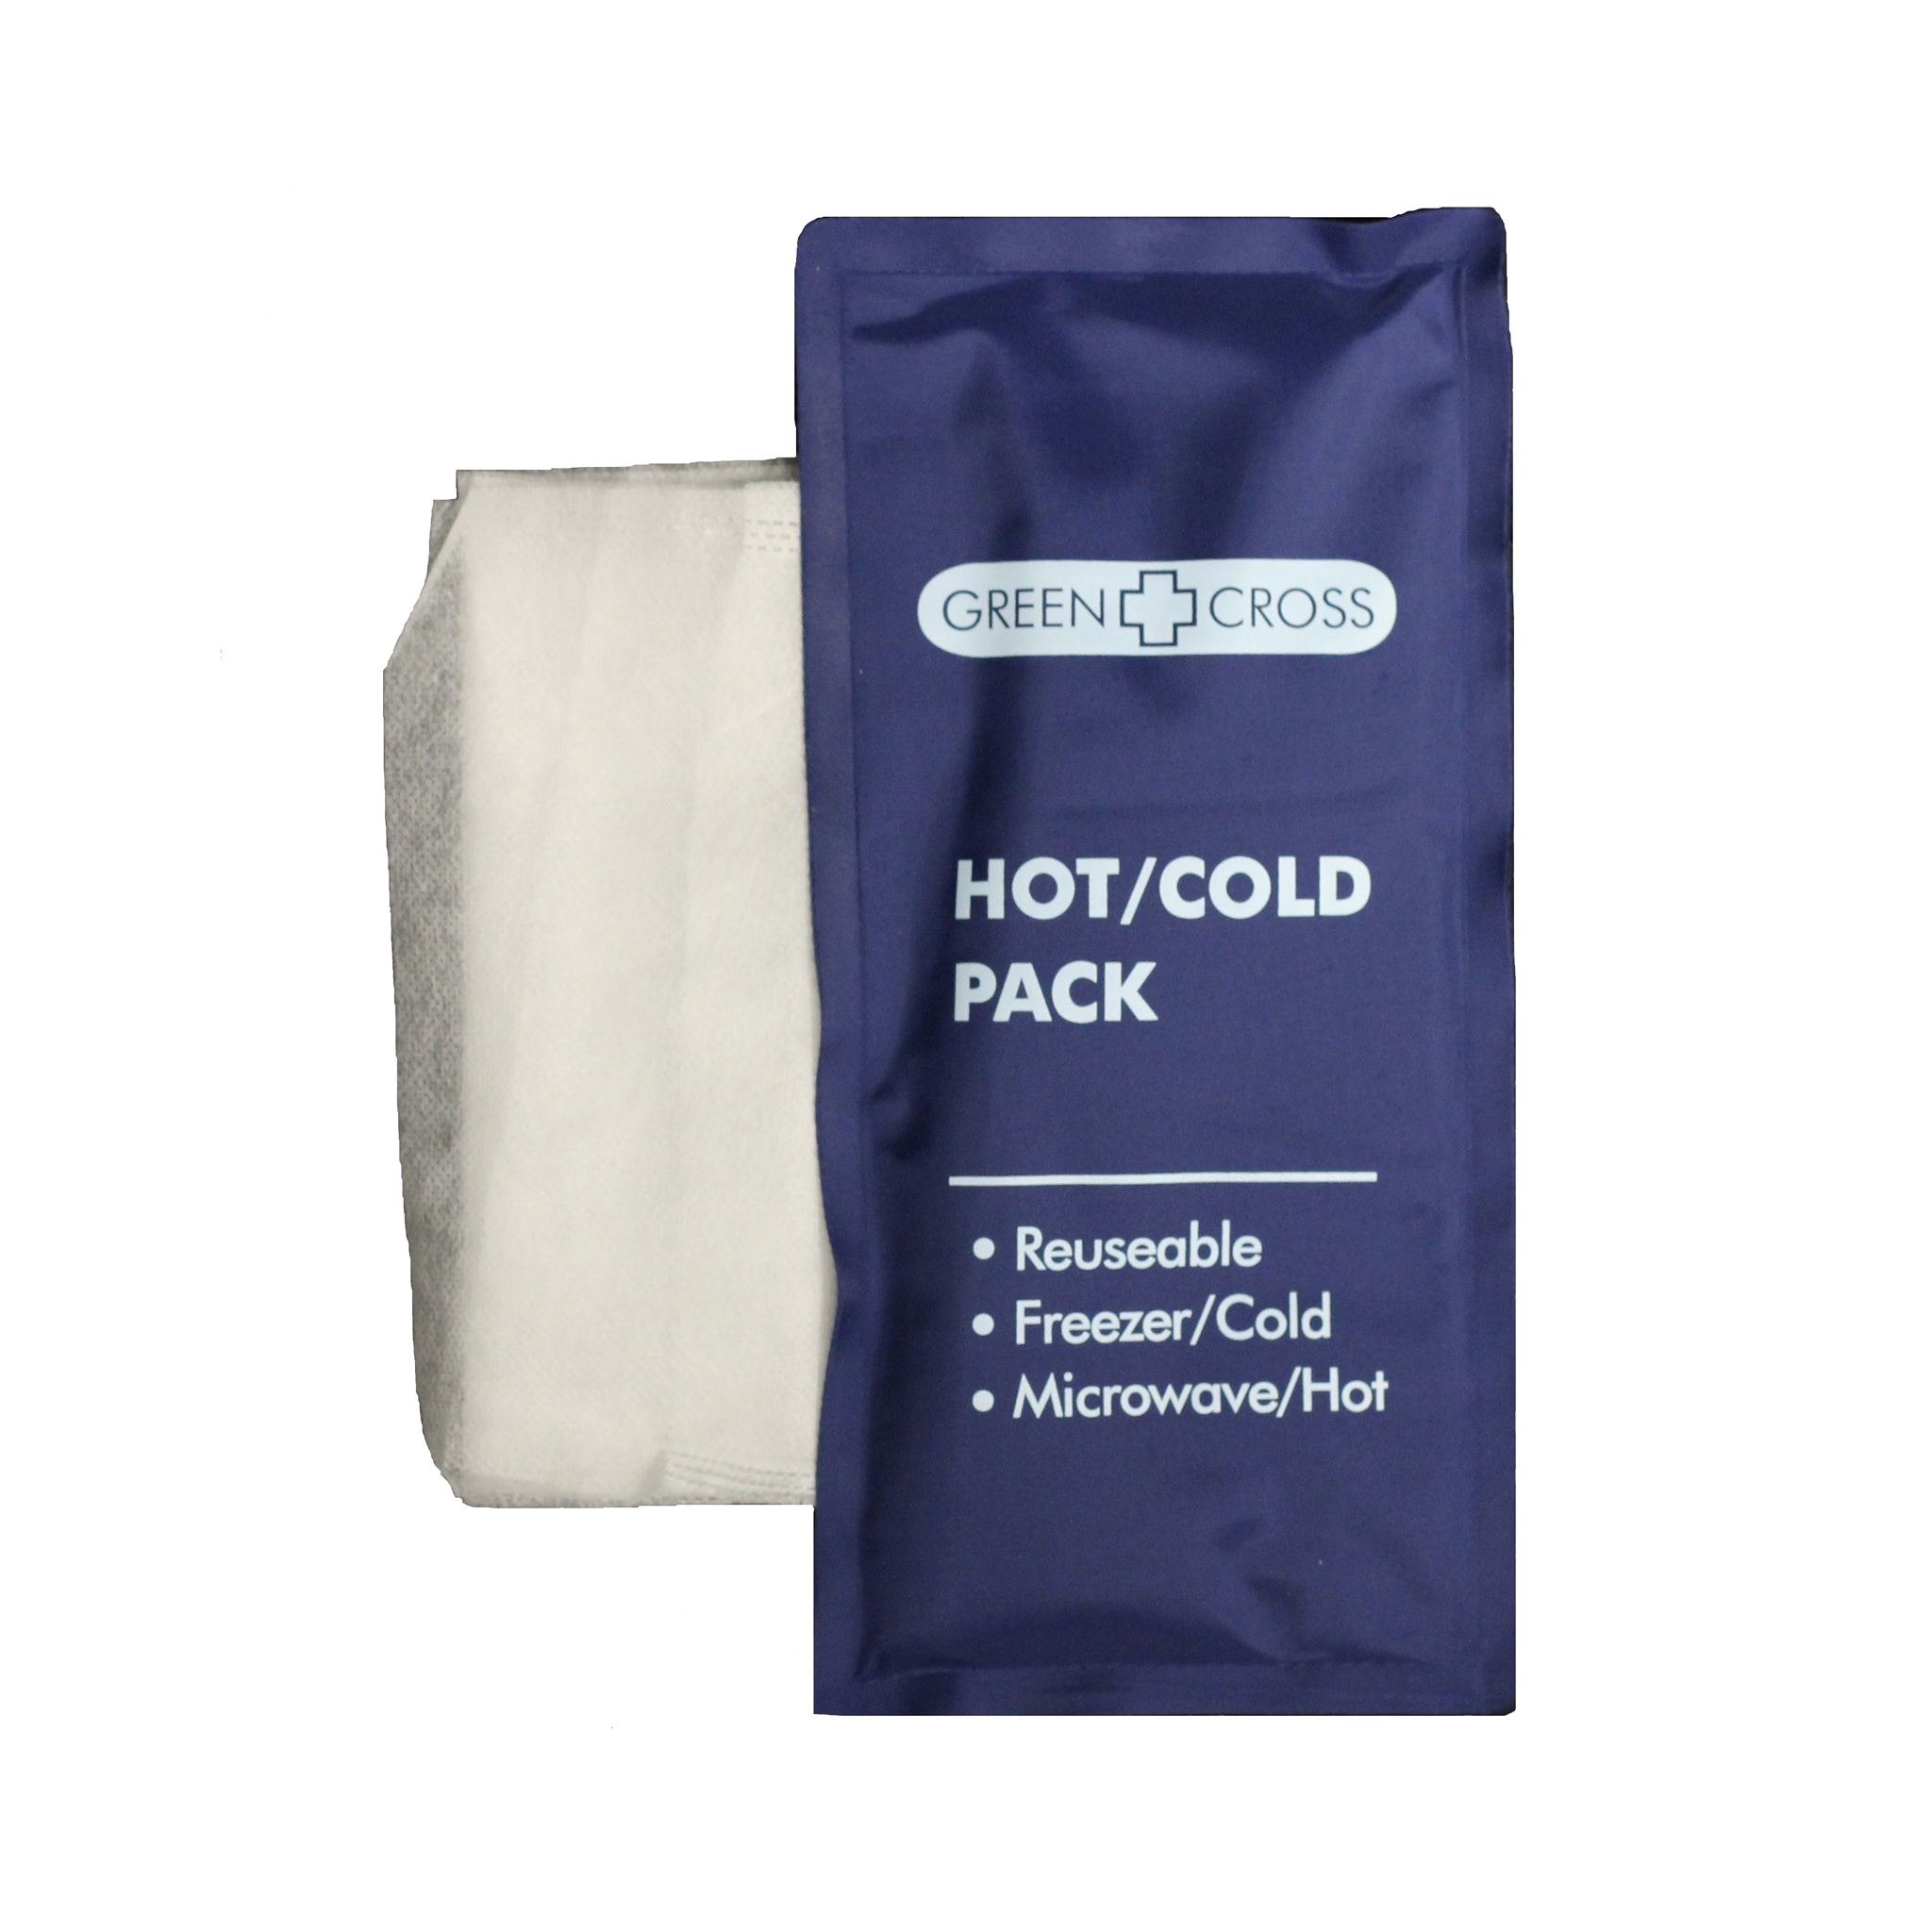 Green Cross Reusable Hot/Cold Pack